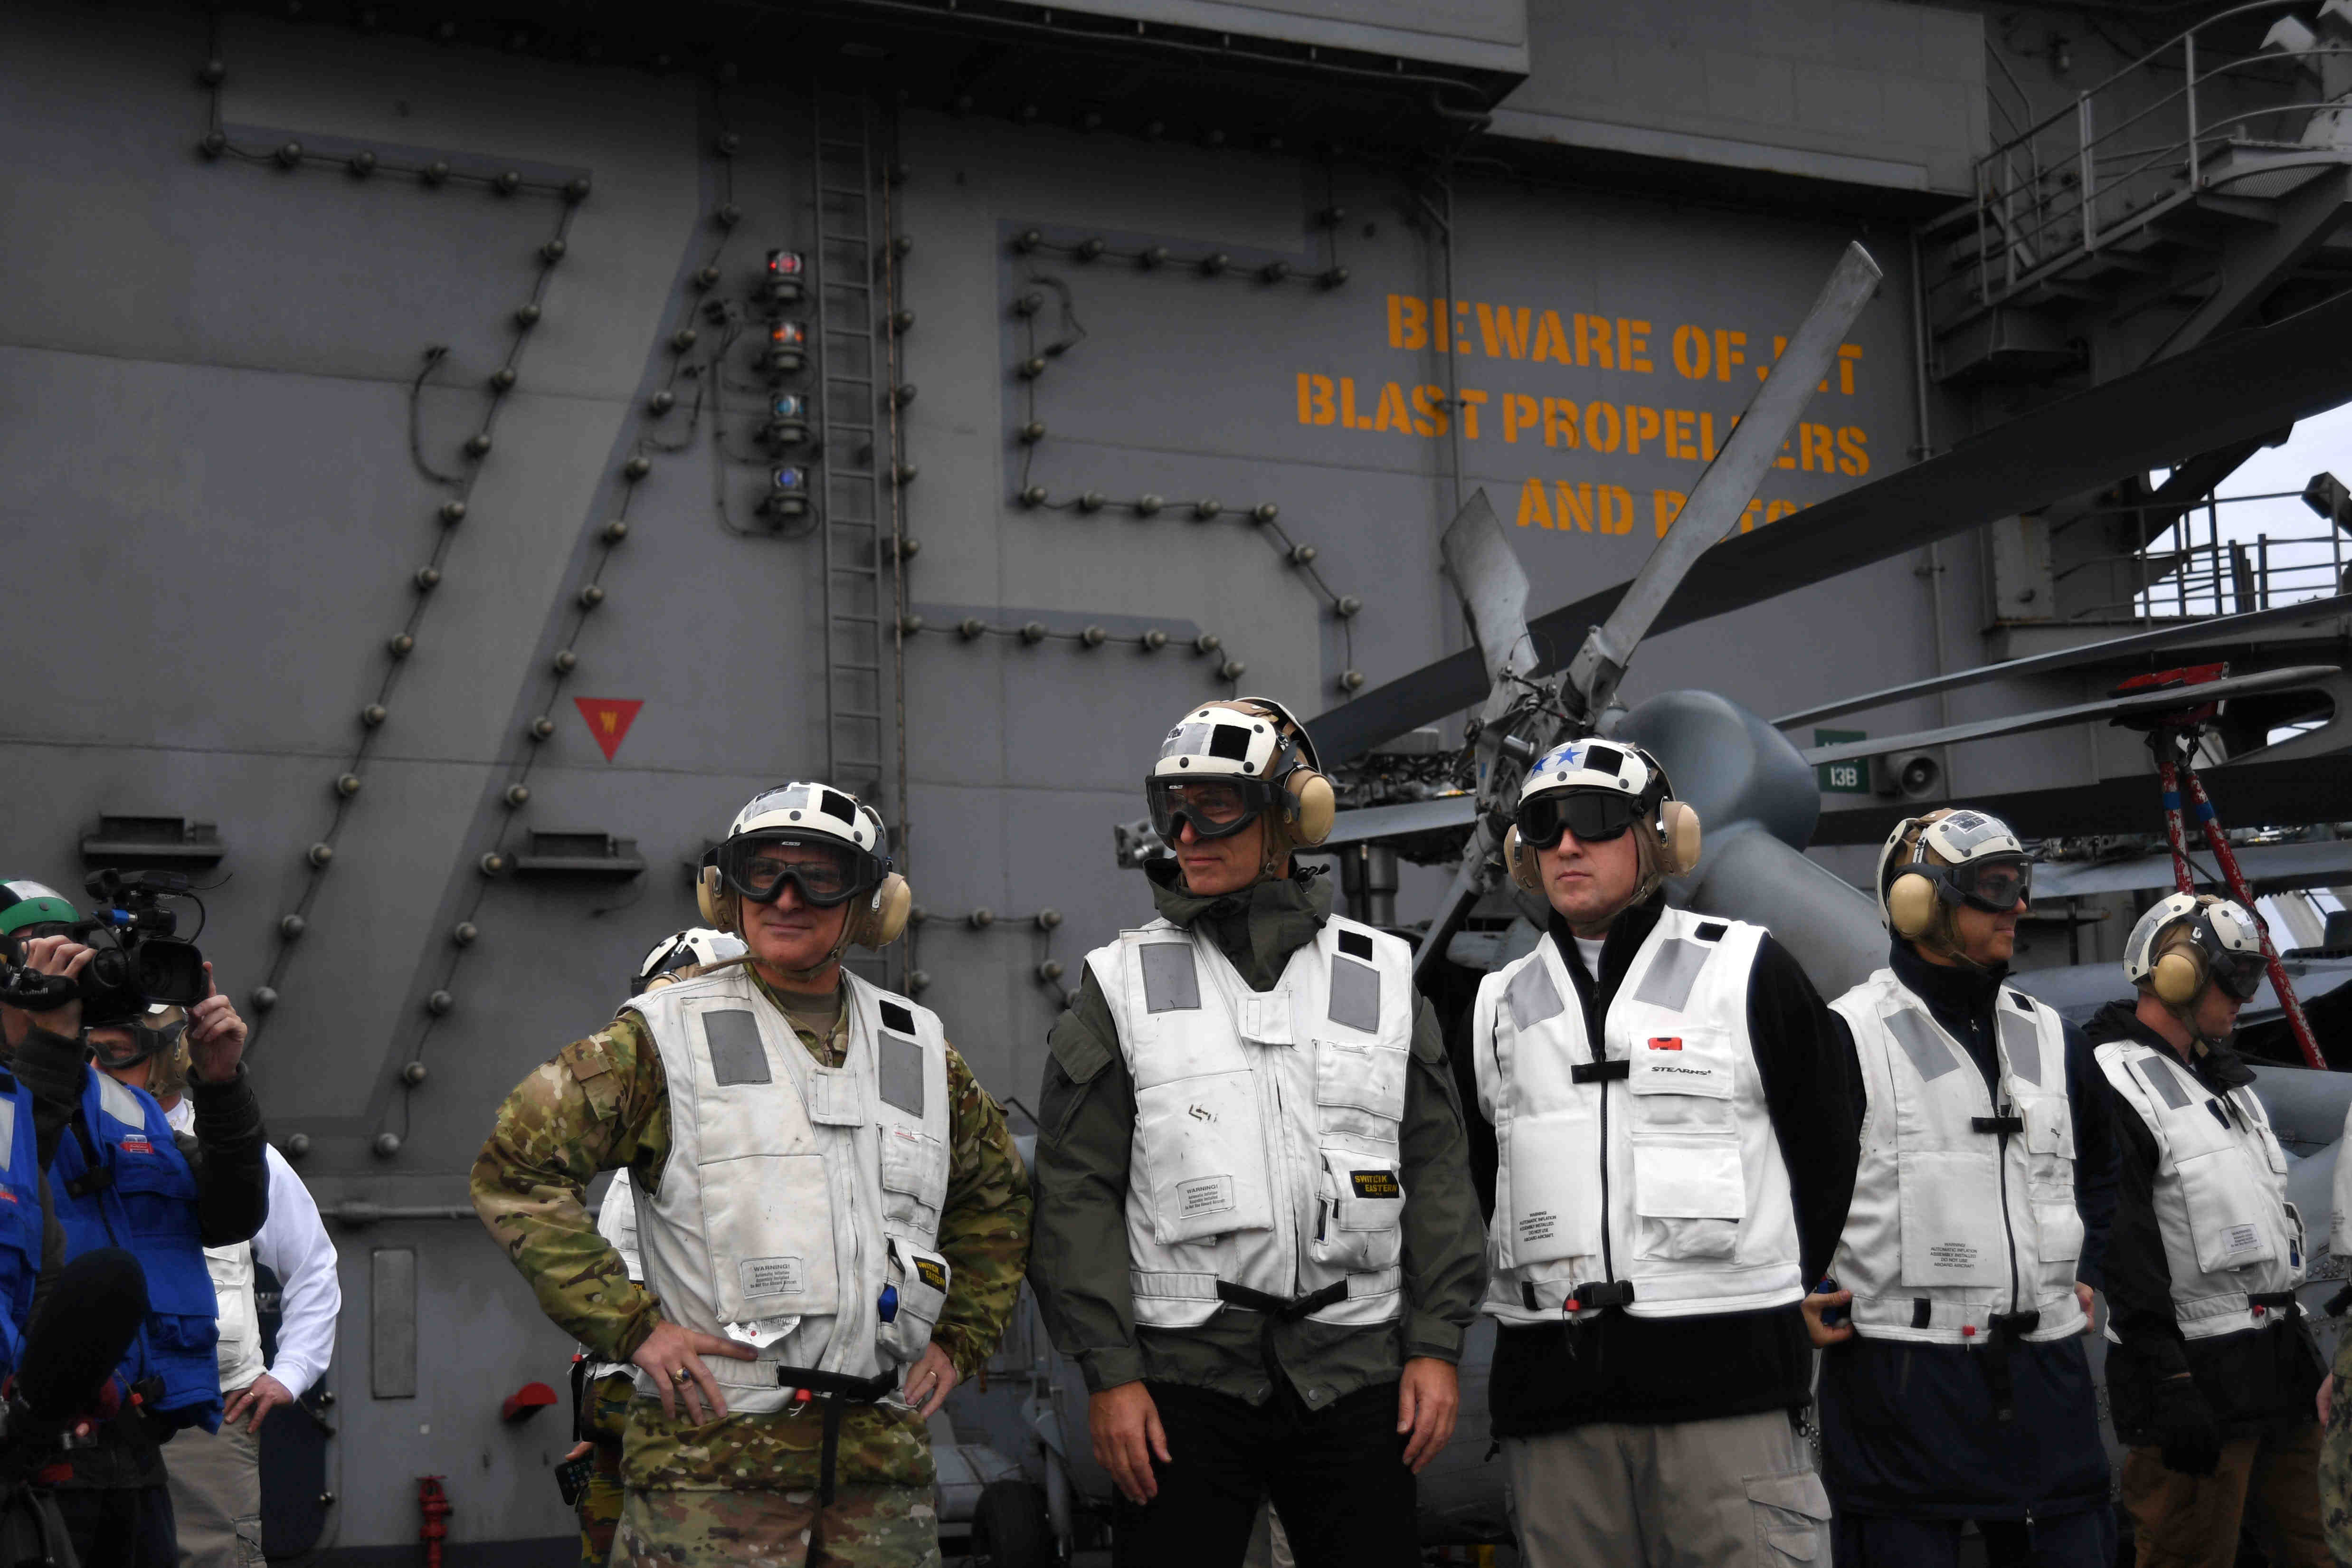 181012-N-EA818-0464 NORTH SEA (Oct. 12, 2018) NATO Secretary General Jens Stoltenburg, center, Supreme Allied Commander Europe, Gen. Mike Scaparotti, left, and Commander, Carrier Strike Group 8, Rear Adm. Gene Black observe flight operations on the flight deck aboard the Nimitz-class aircraft carrier USS Harry S. Truman (CVN 75). Currently operating in the U.S. Sixth Fleet area of operations, Harry S. Truman will continue to foster cooperation with regional allies and partners, strengthen regional stability, and remain vigilant, agile and dynamic. (U.S. Navy photo by Mass Communication Specialist 2nd Class Thomas Gooley/Released)